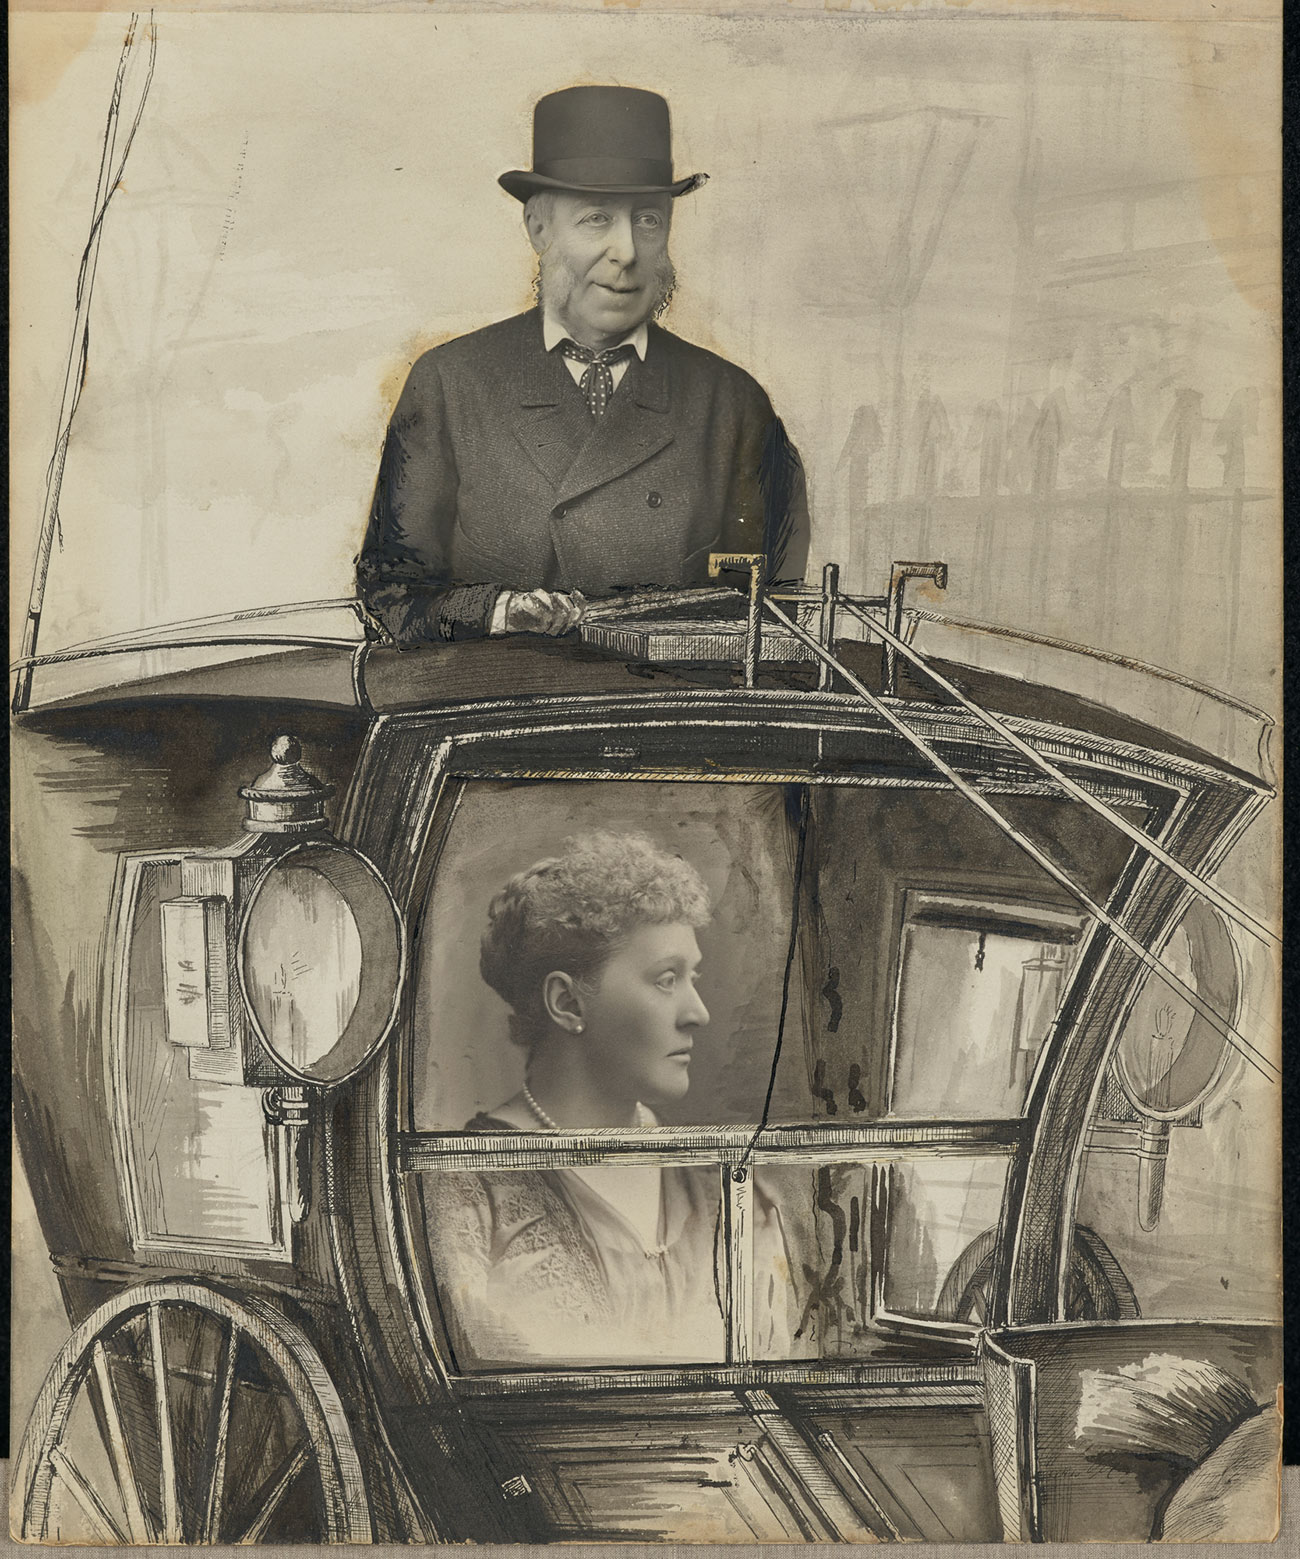 drawing of a horse-drawn buggy with photos of a woman and a man superimposed as passenger and driver.